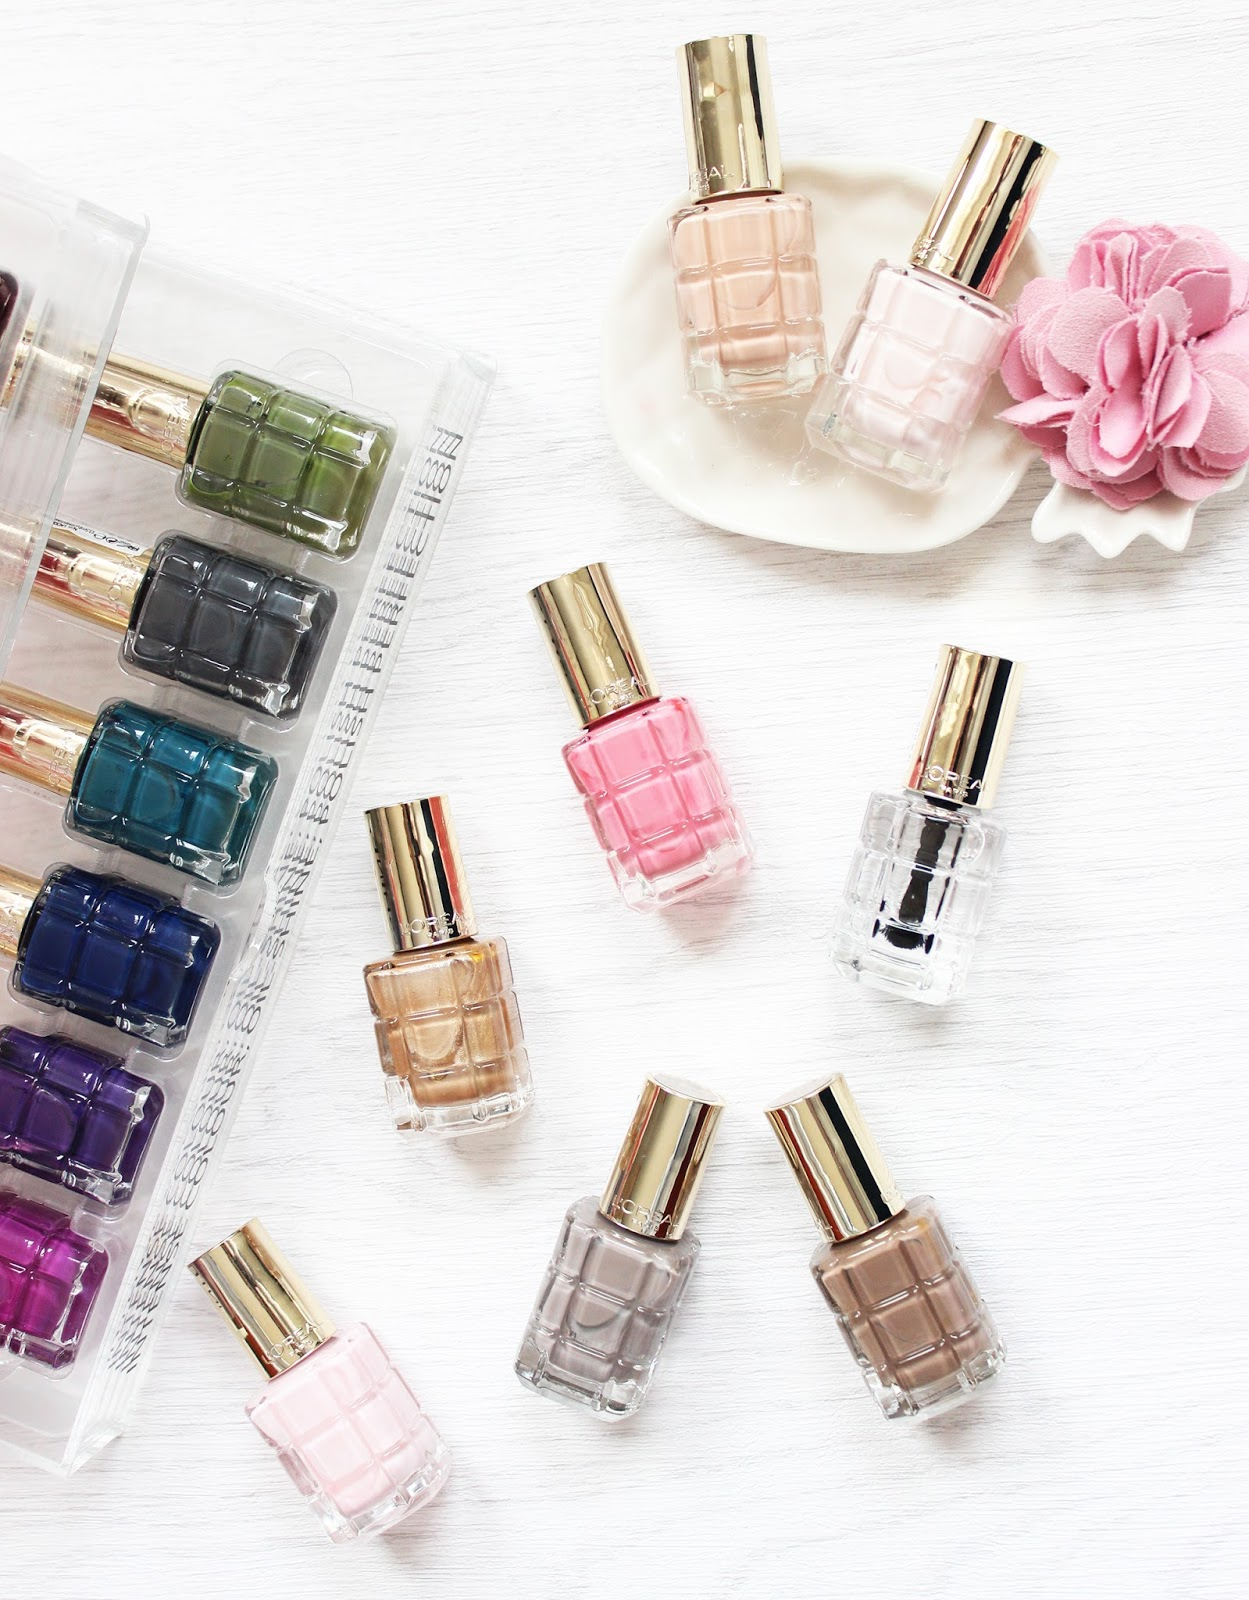 L'Oreal Colour Riche Le Vernis a L'Huile nail polishes review and swatches